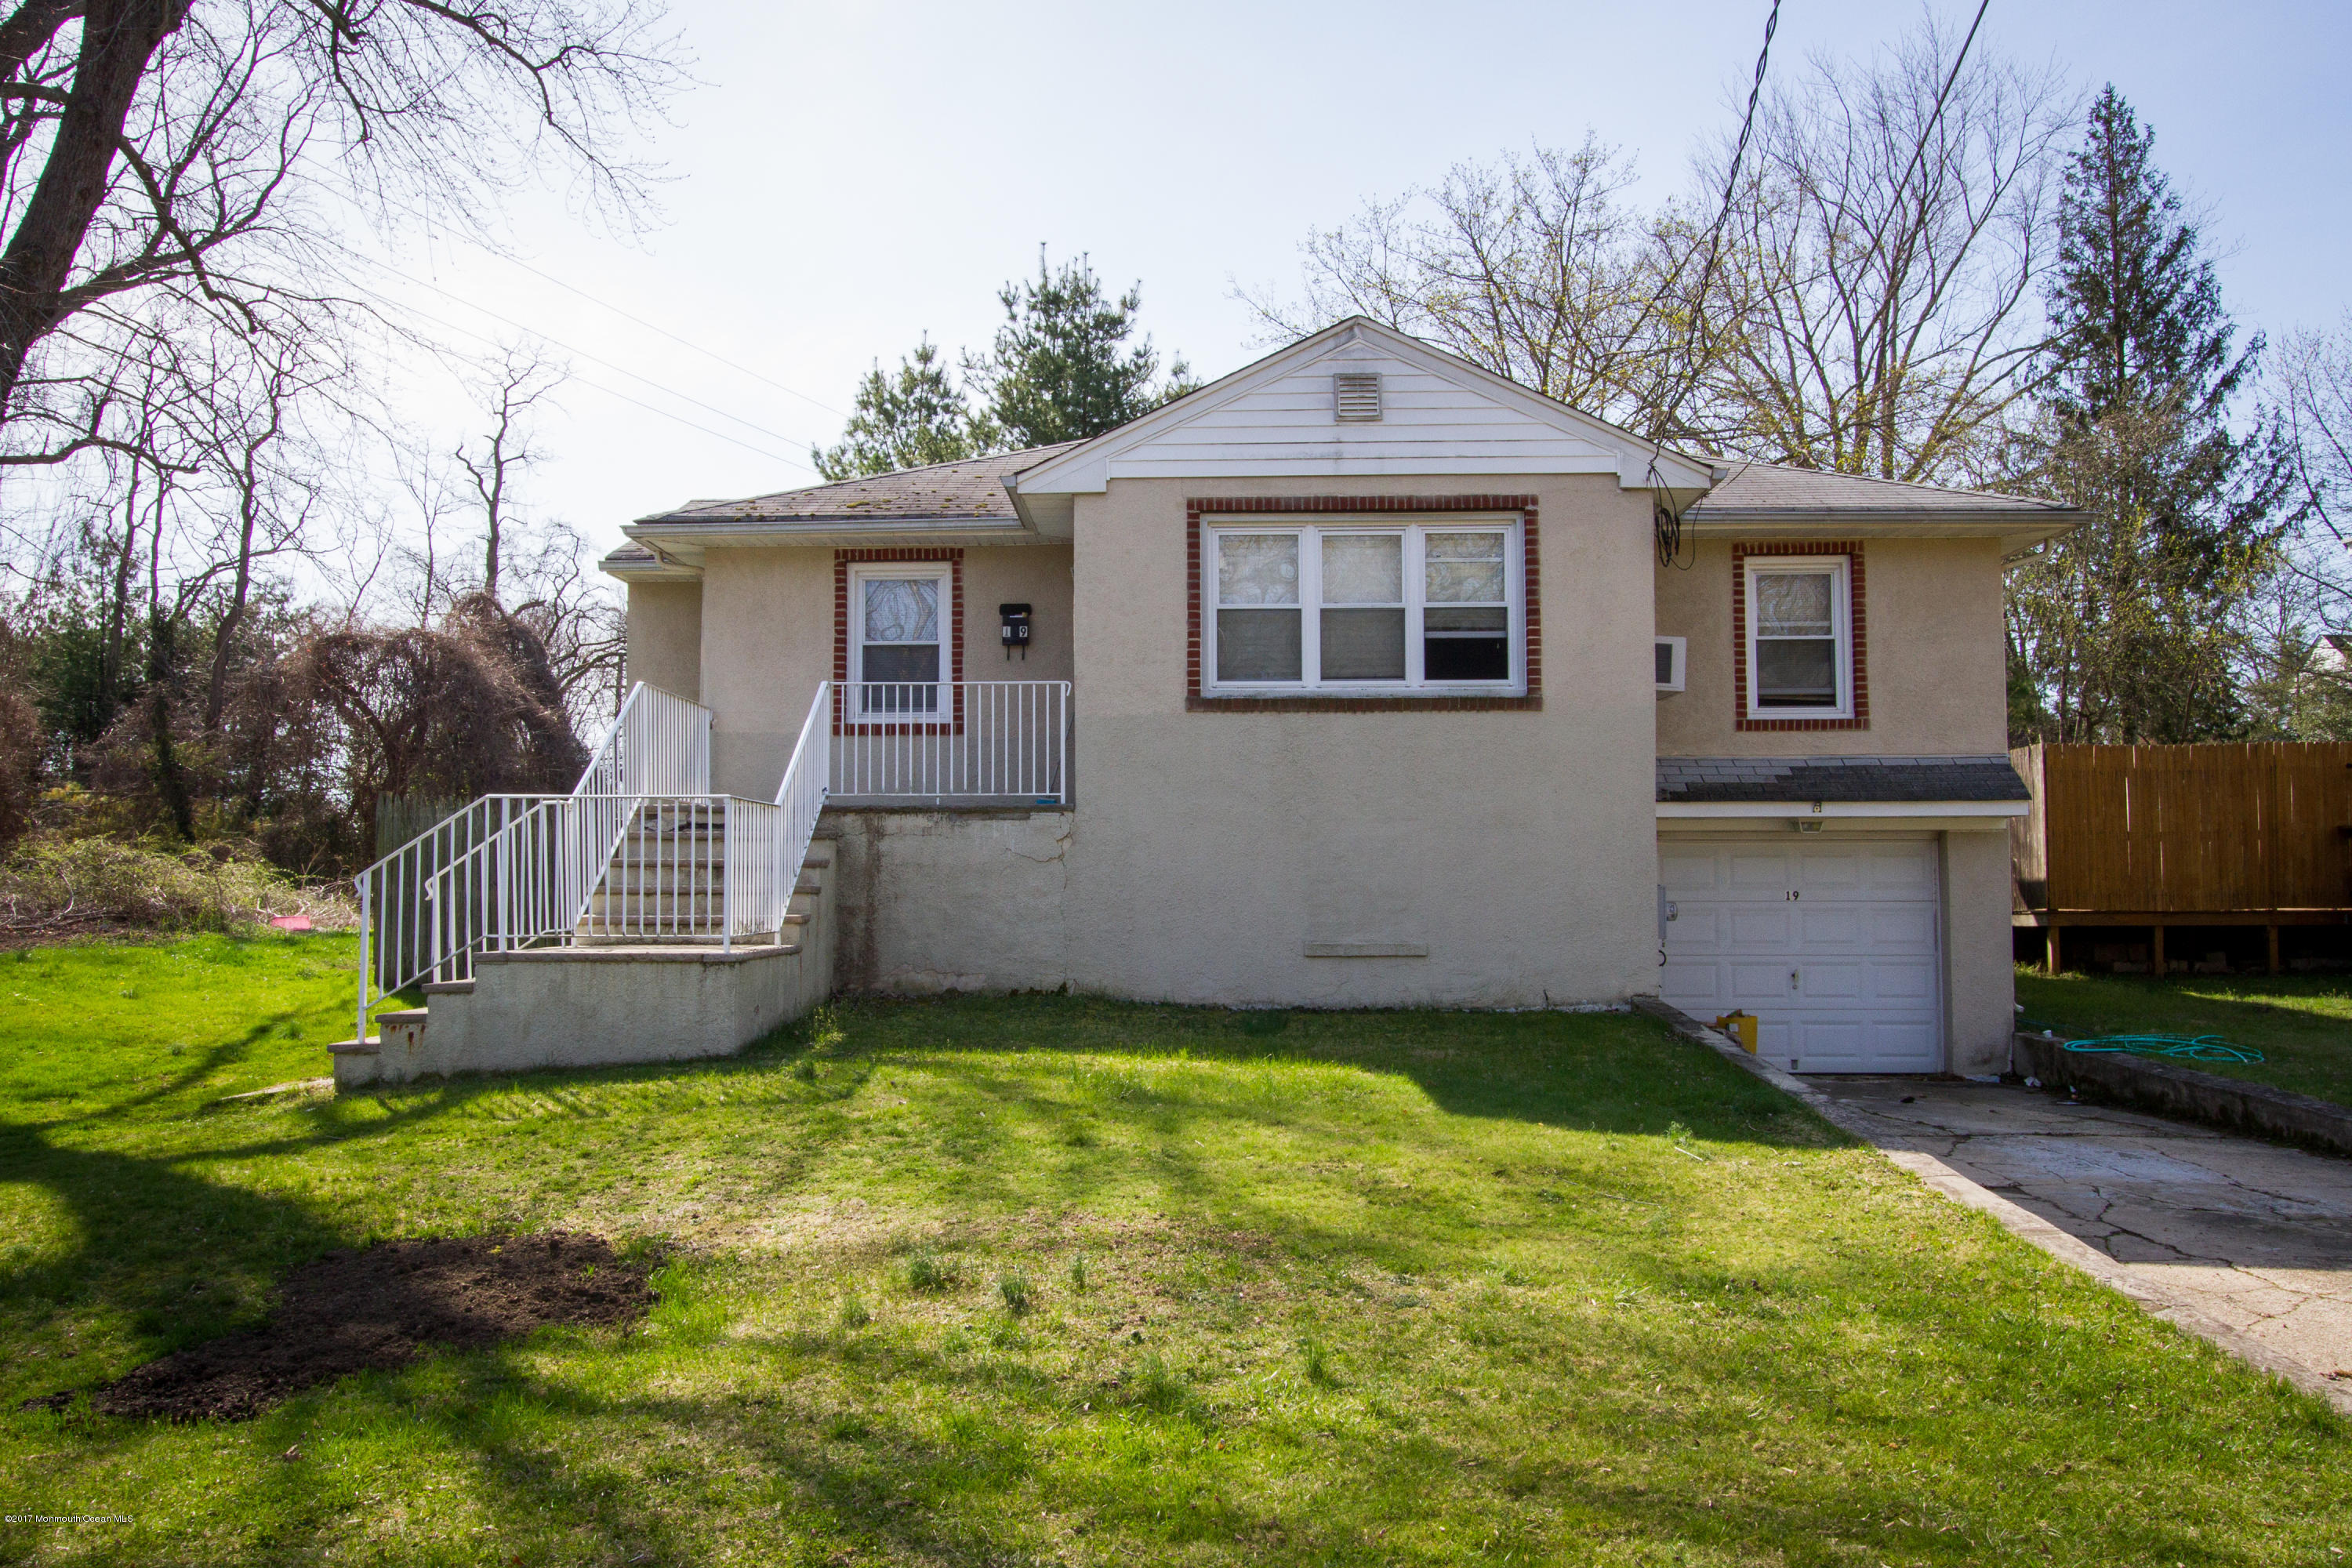 19 WILLIS PLACE, RED BANK, NJ 07701